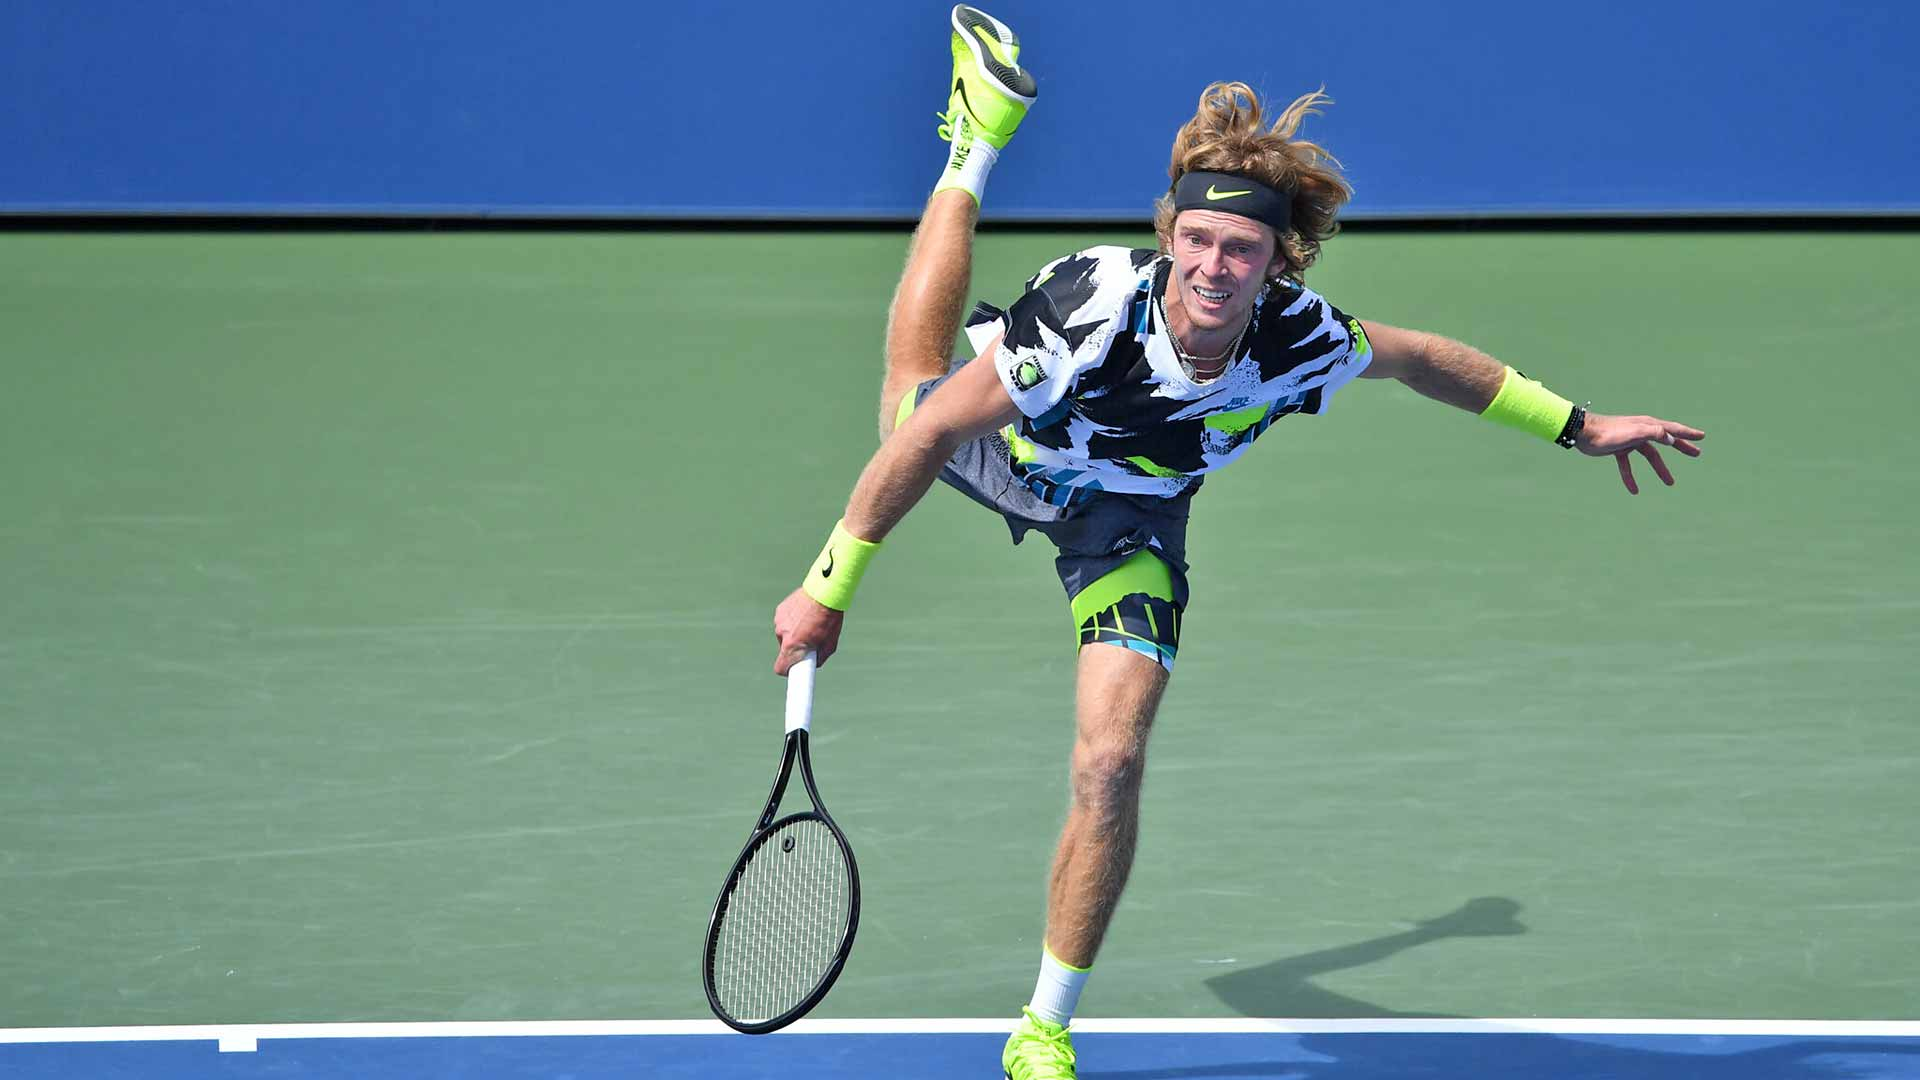 <a href='/en/players/andrey-rublev/re44/overview'>Andrey Rublev</a>